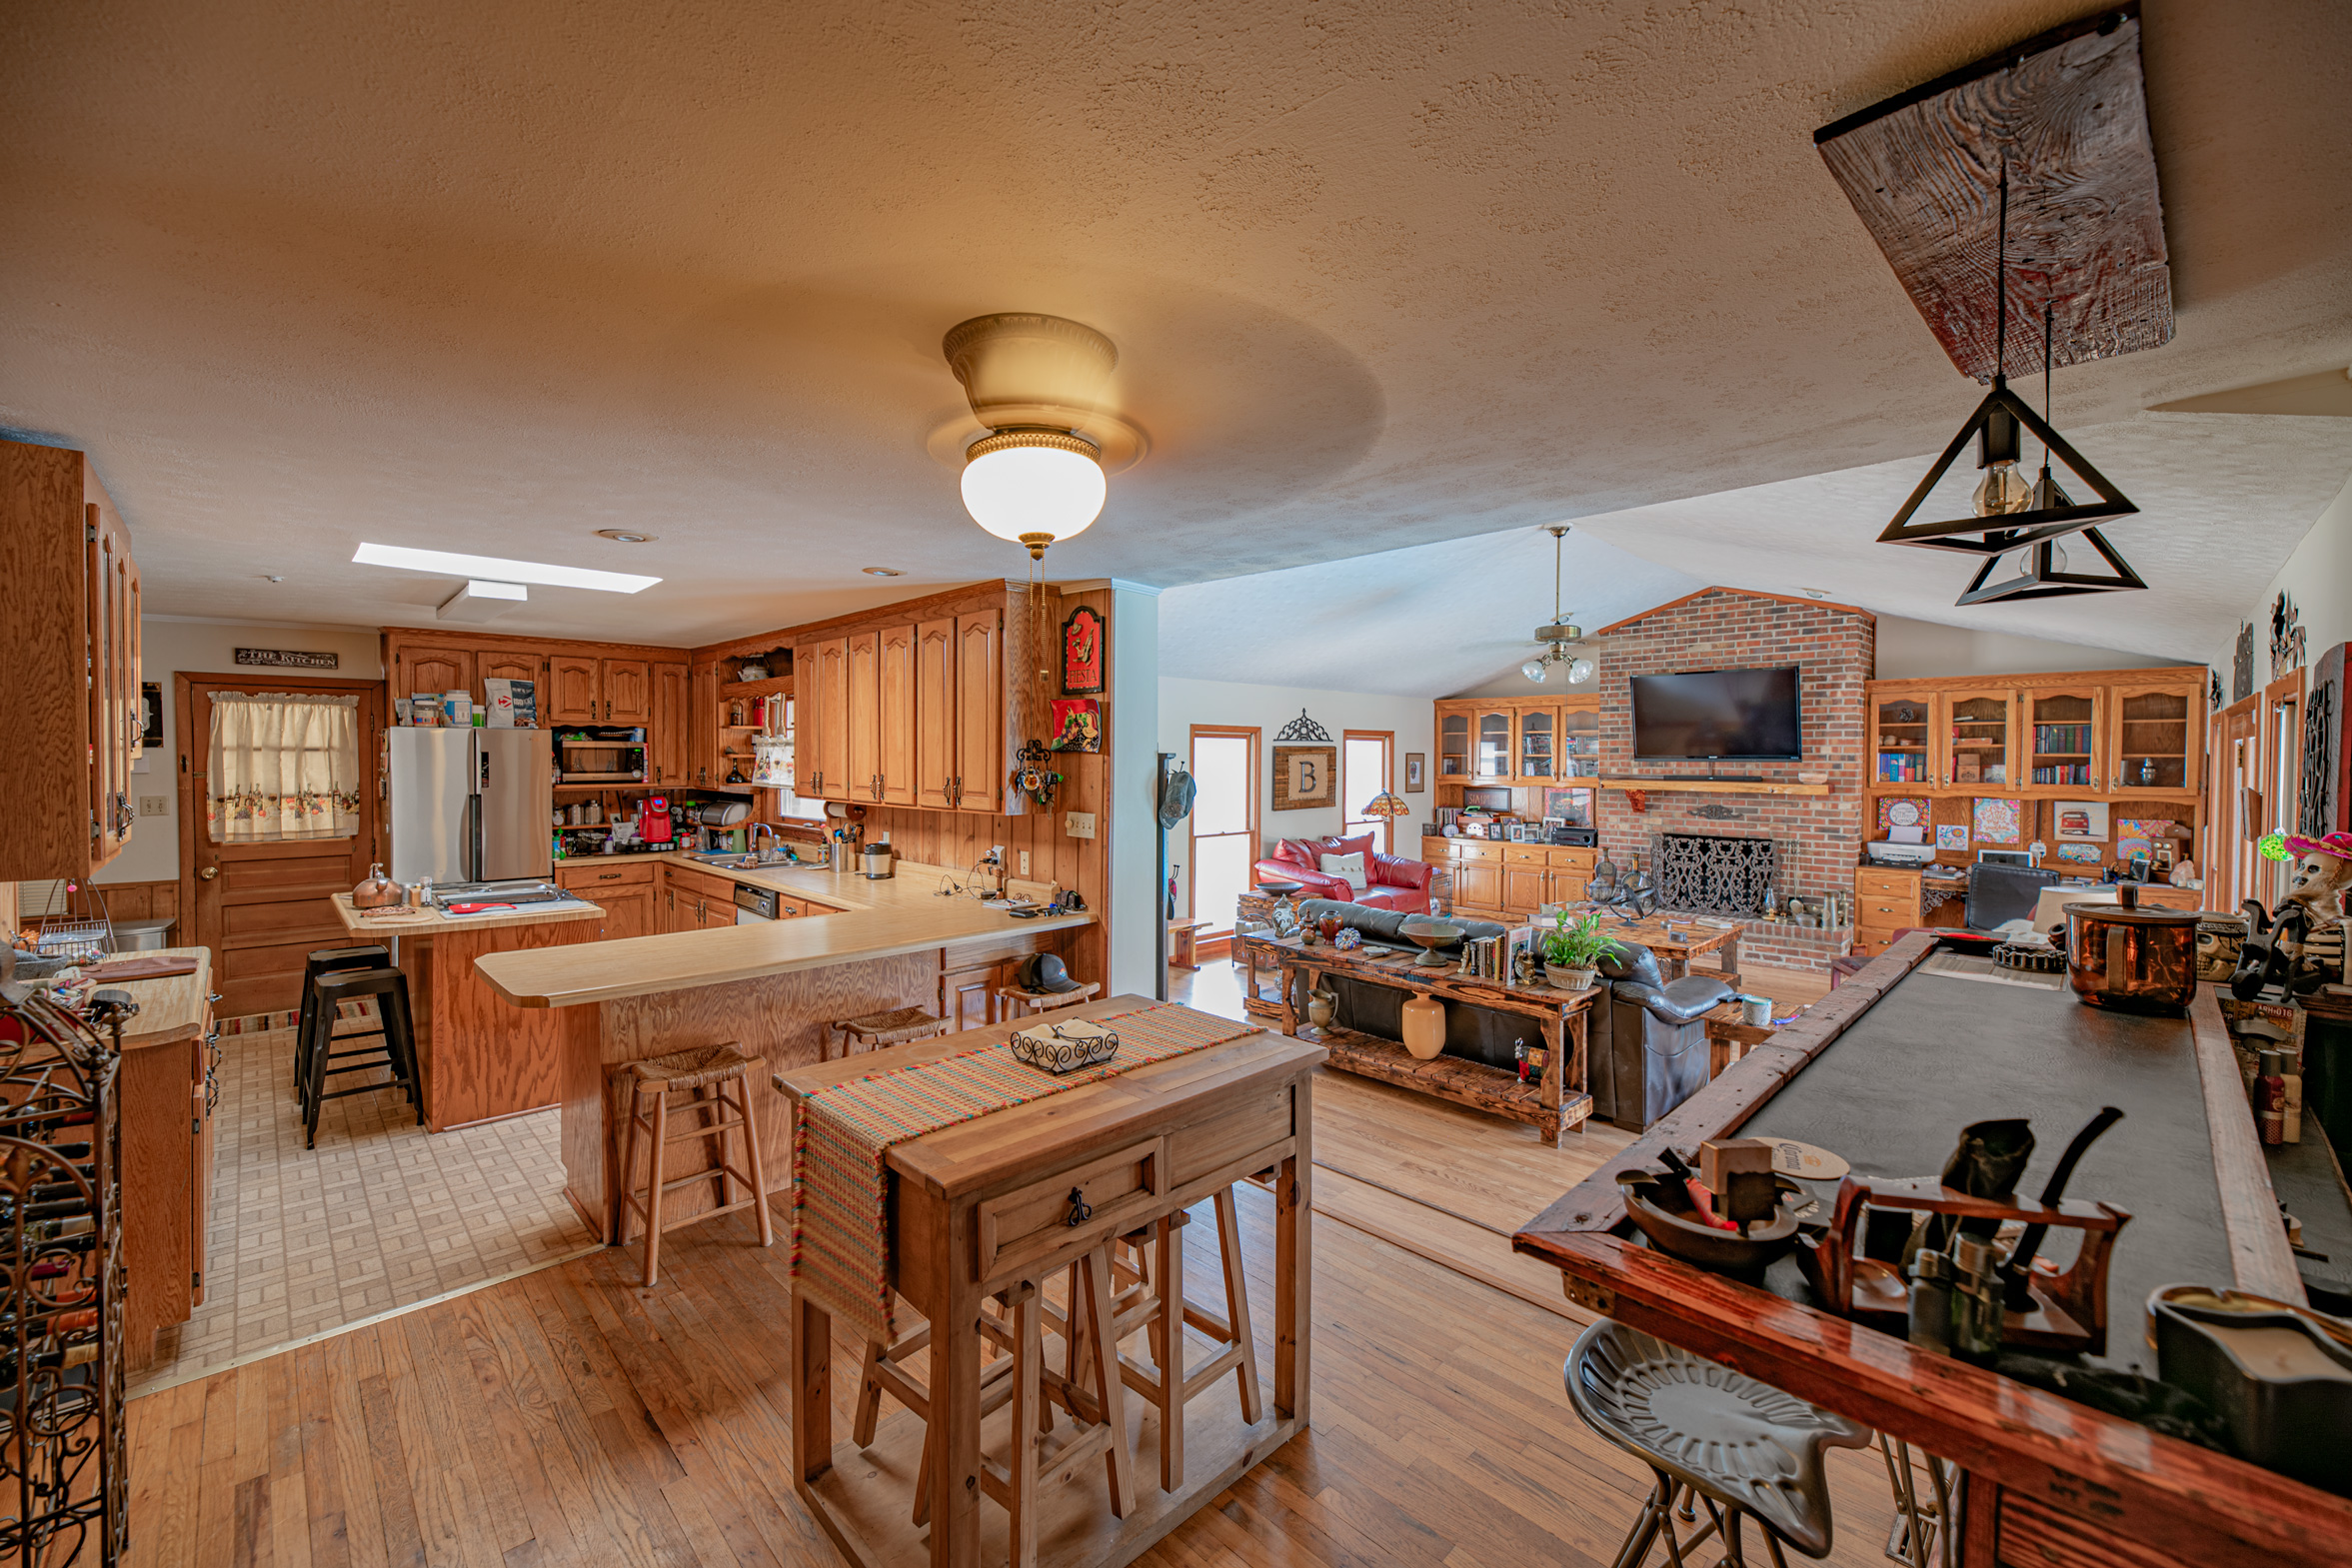 3-rivers-realty,3rr,911-morningside-drive,bainbridge-real-estate,bainbridggarealestate,mills-brock,three-rivers-realty,kitchen-living-room-bar.jpg